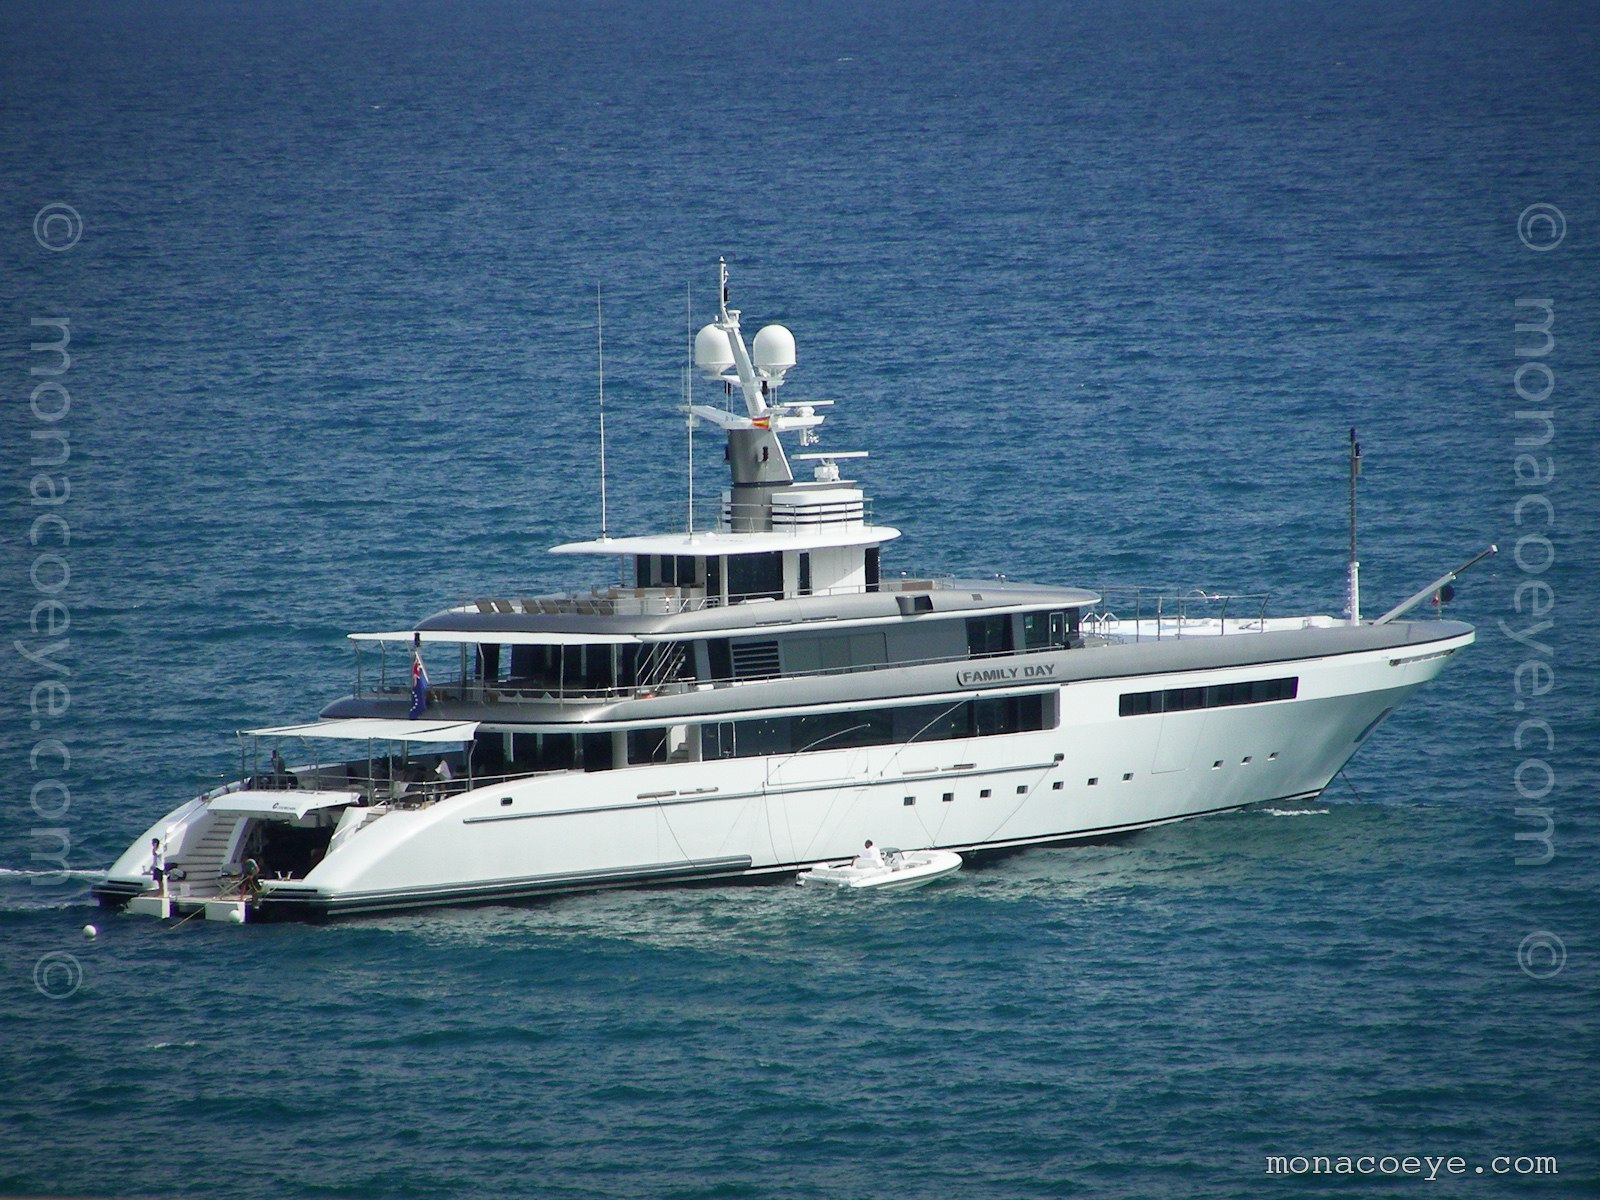 Family Day yacht. Built by Codecasa Yachts, 2010, 65 metres